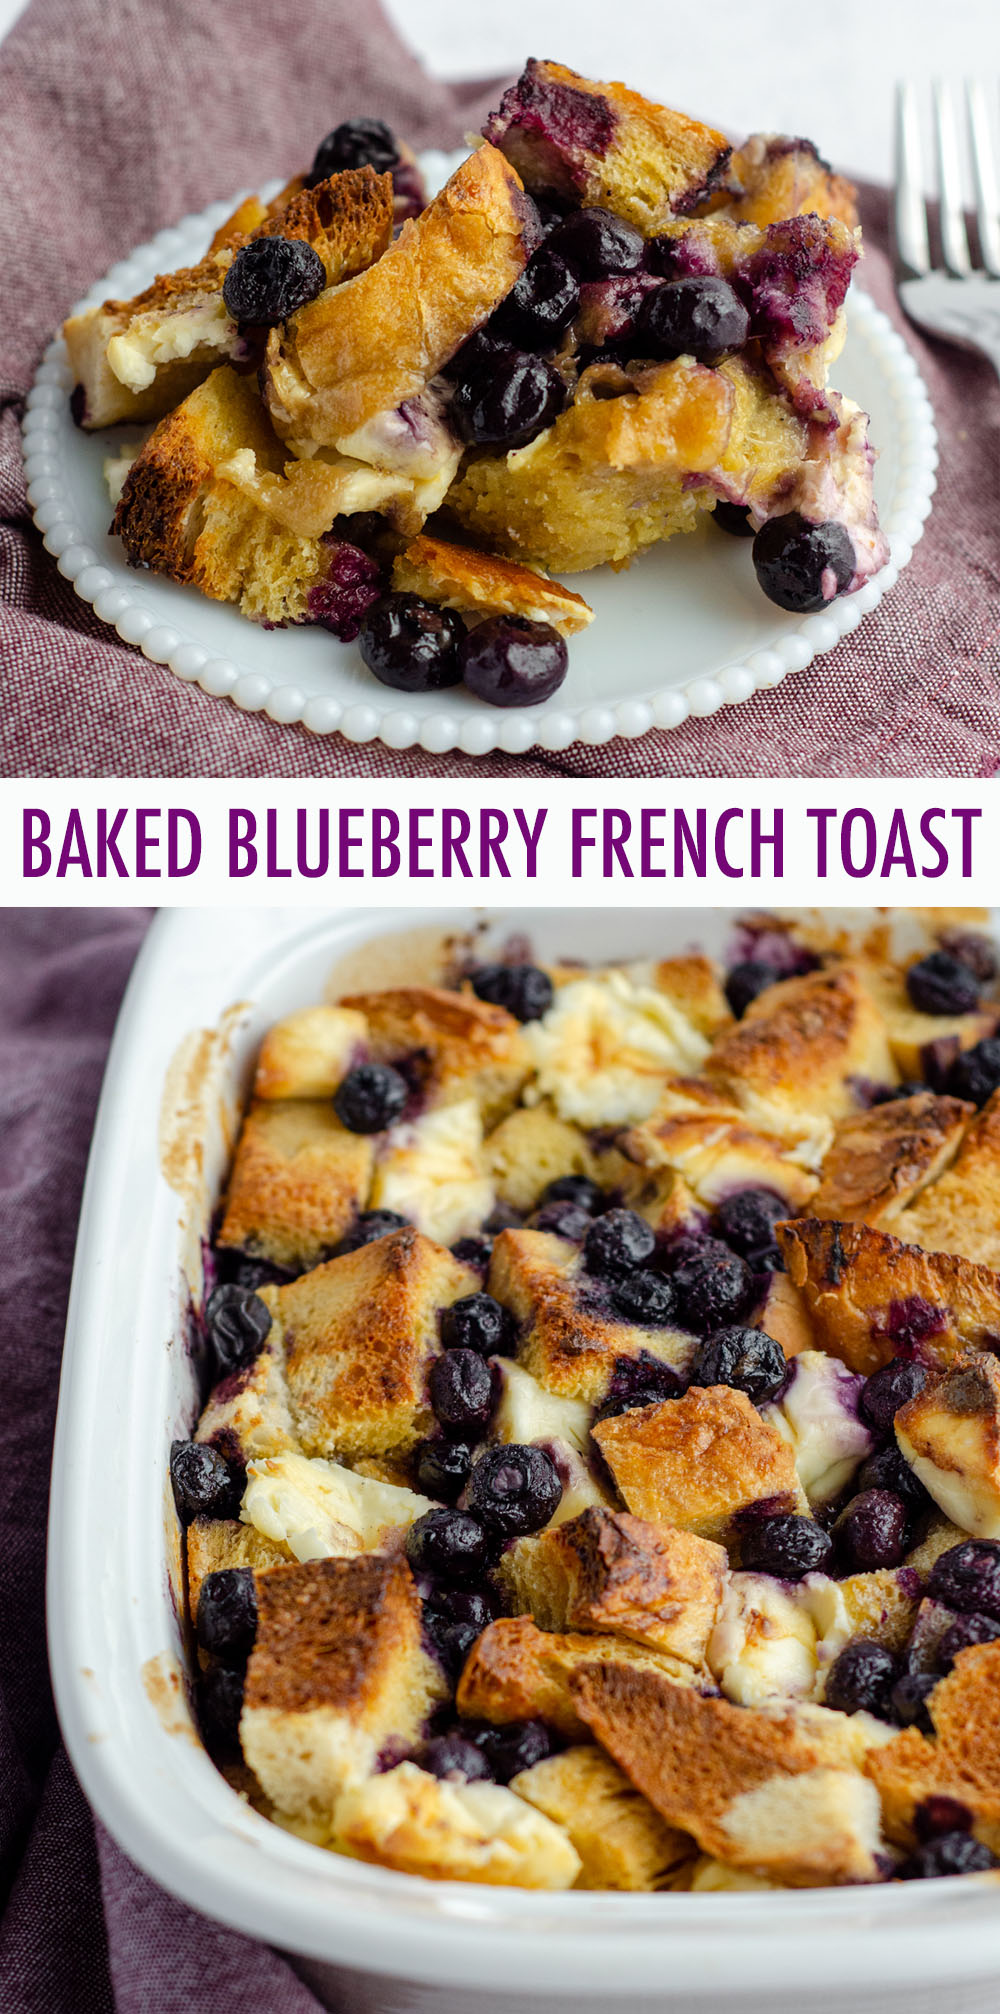 Easy overnight French toast with cream cheese chunks and studded with juicy blueberries.